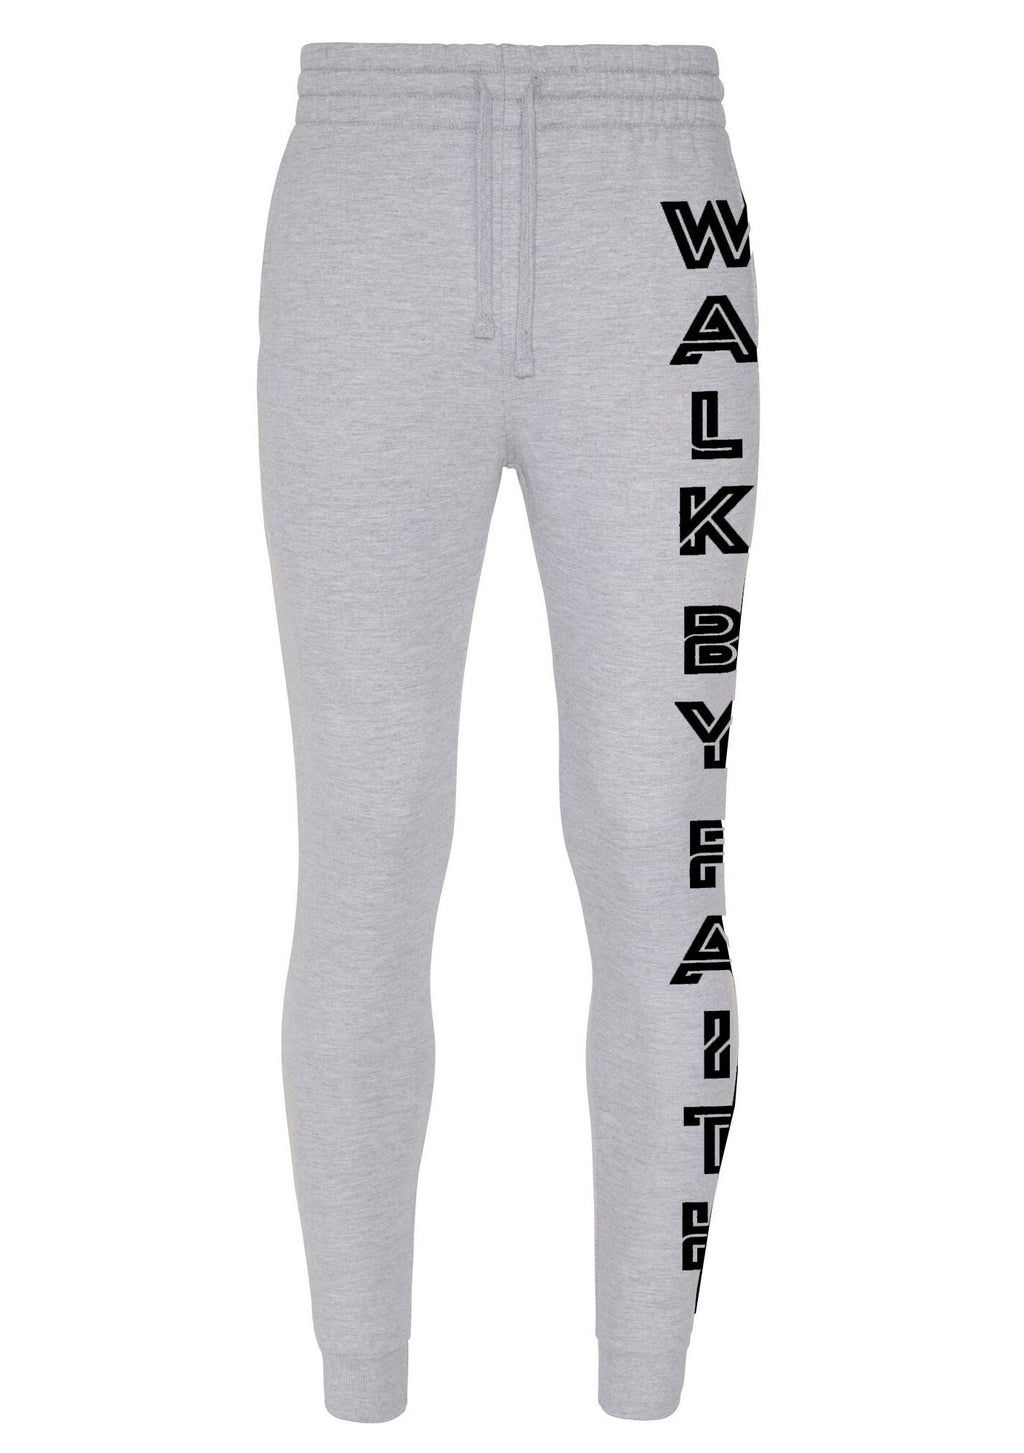 Womens WBF tapered Track Pants (Heather)